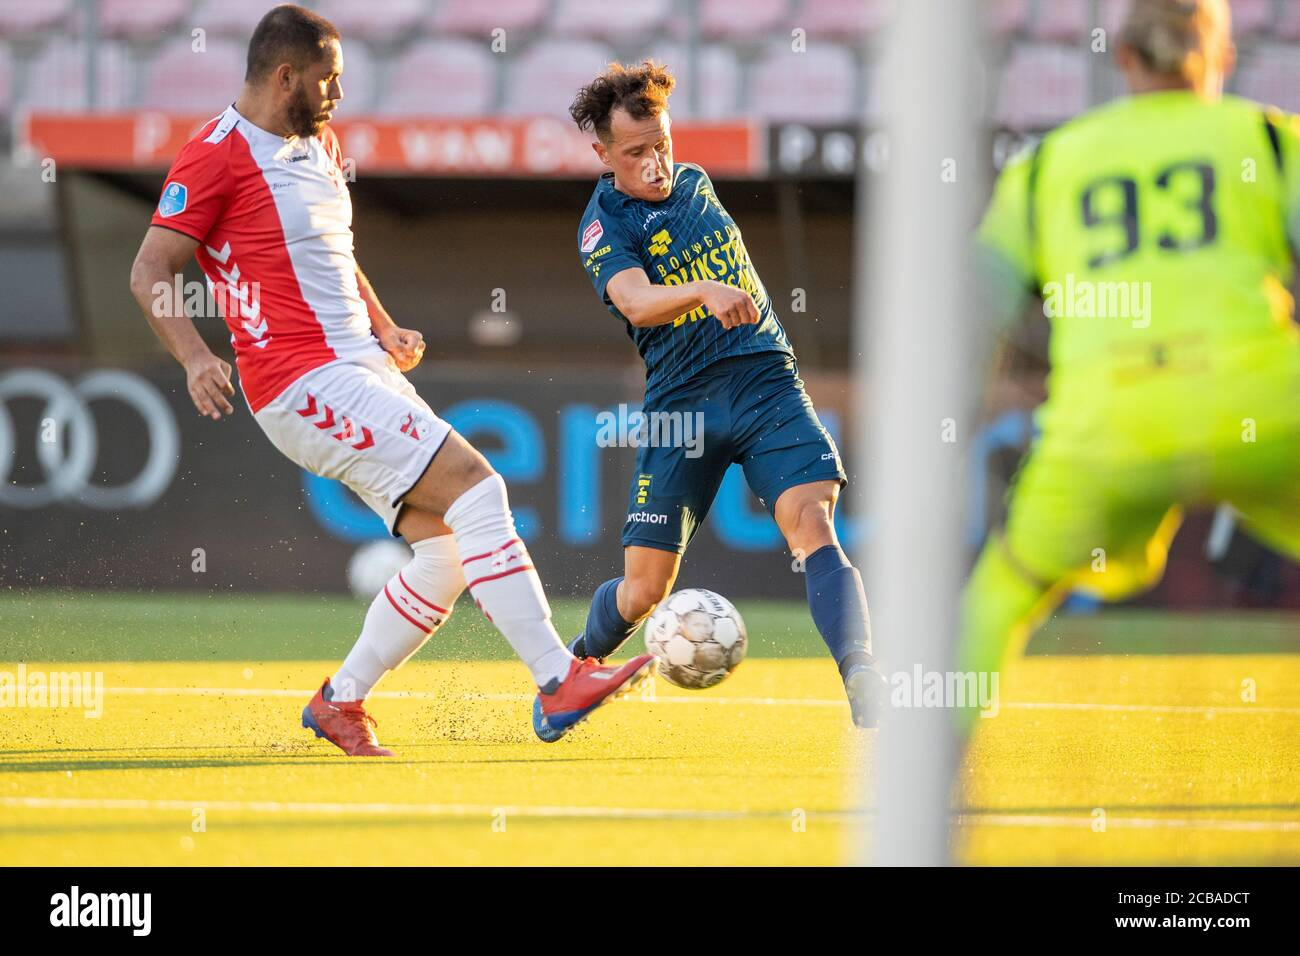 Fc Emmen Vs Cambuur 07 08 2020 Stock Photo Alamy